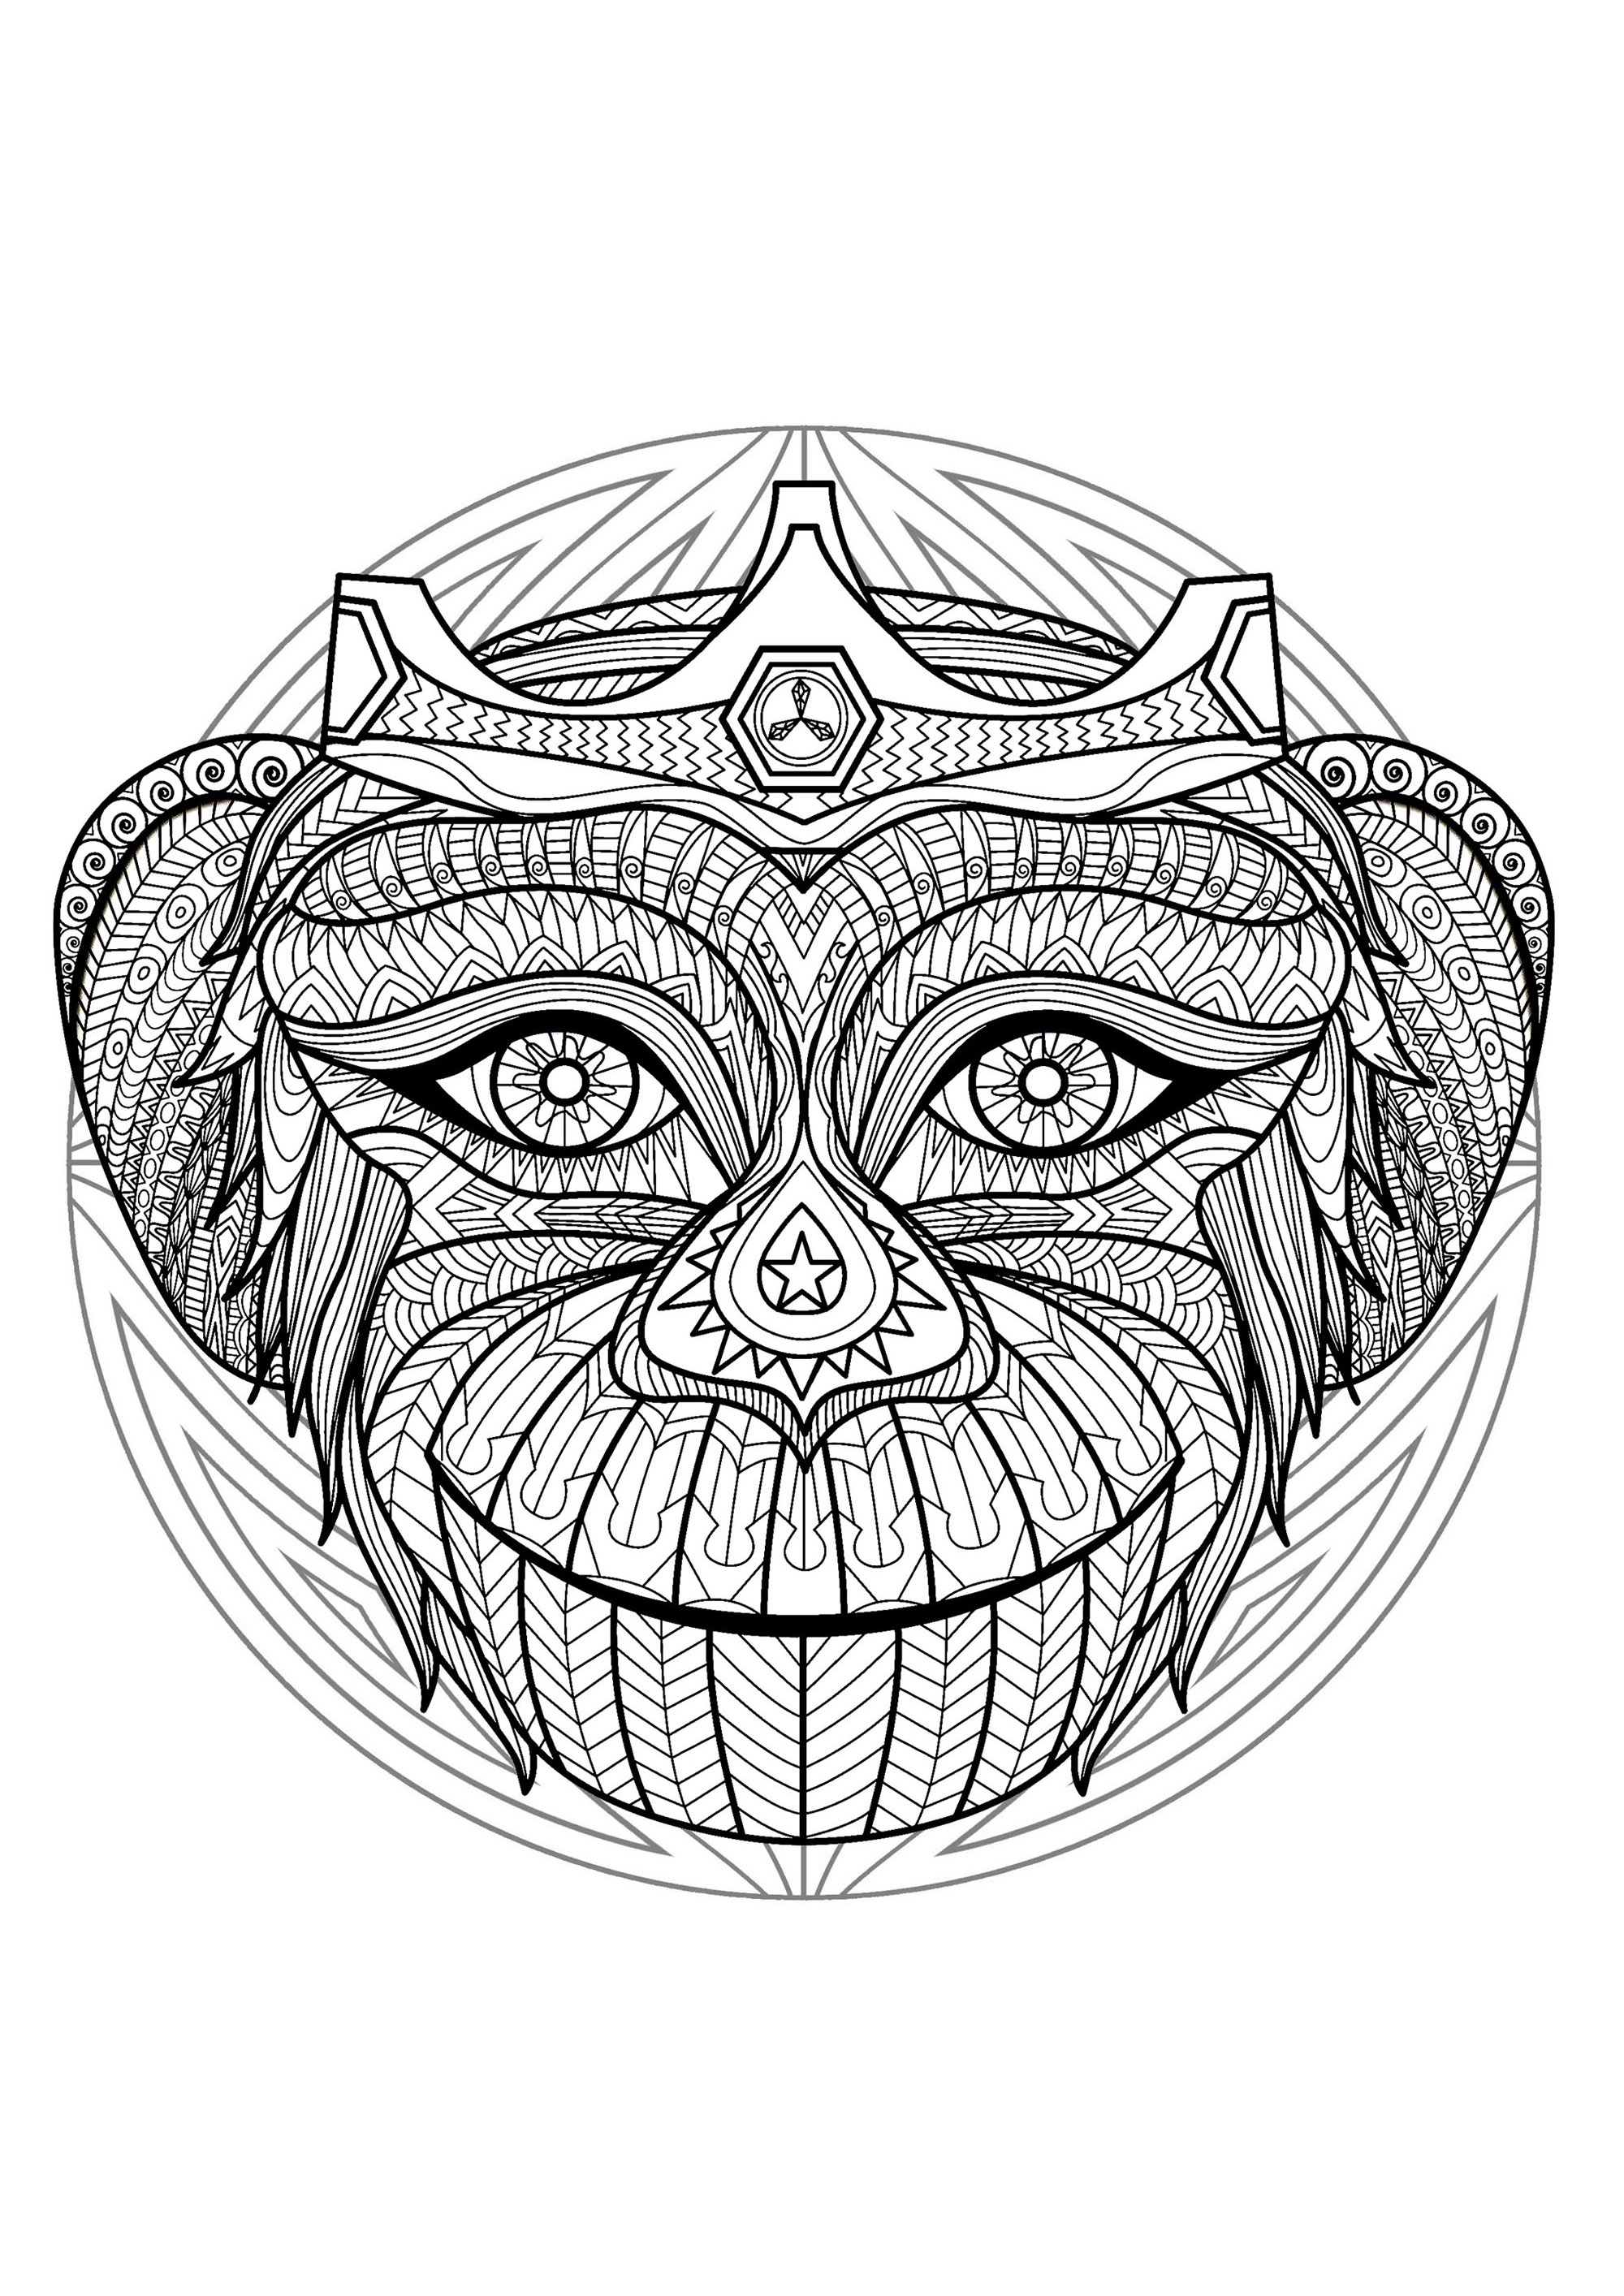 Complex Mandala coloring page with